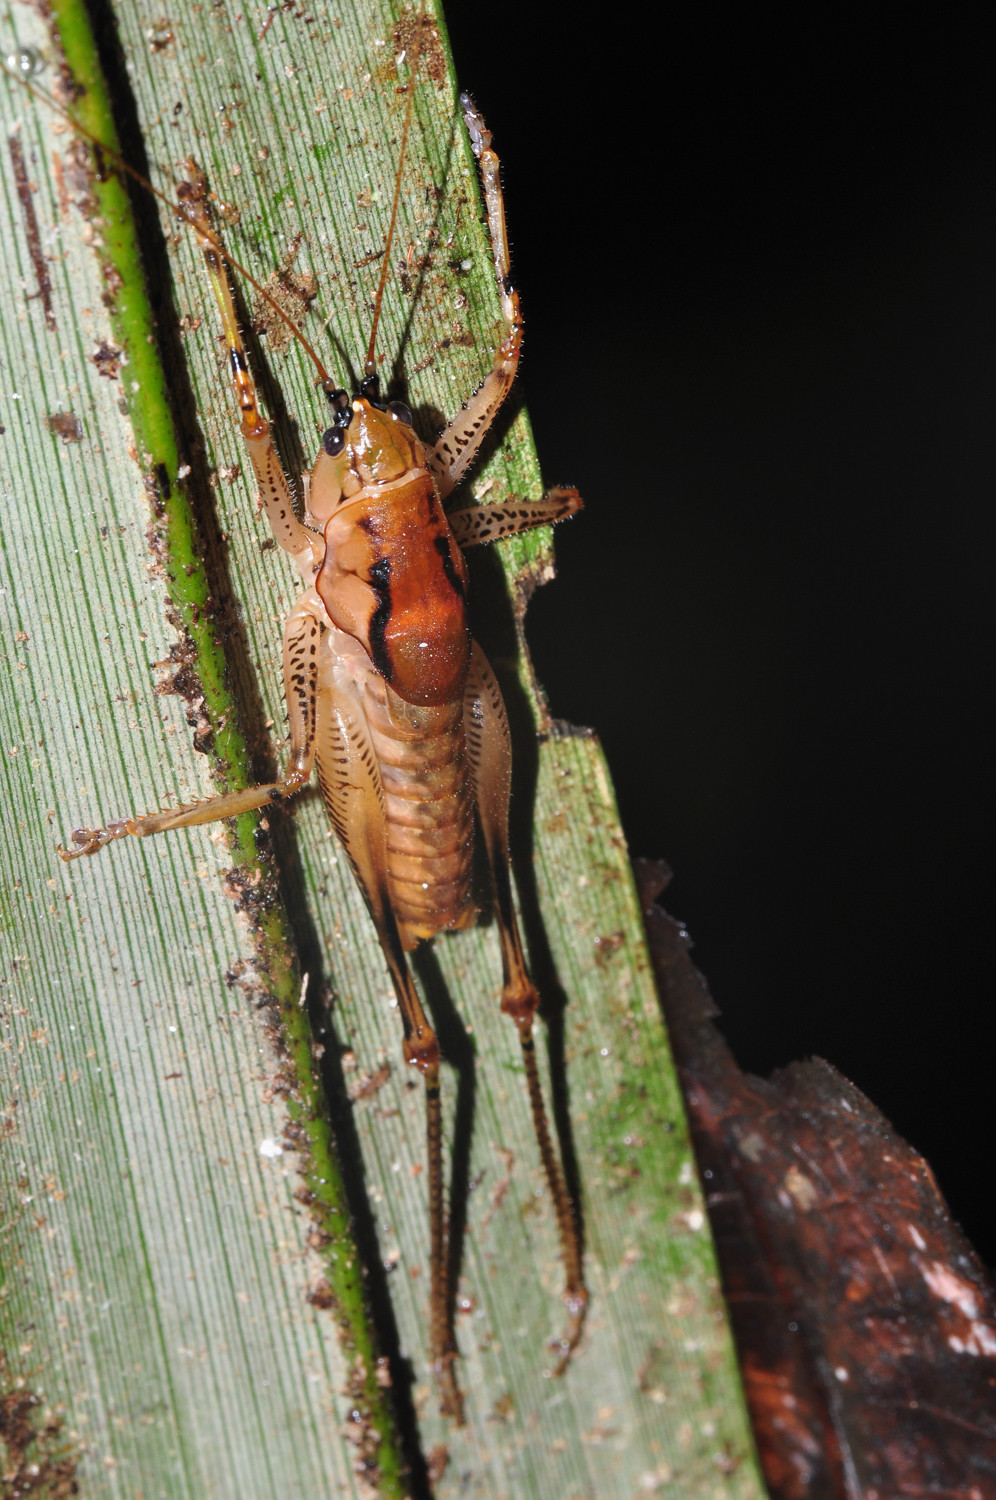 Camel crickets tend to love dark, damp basements. Out in nature, however, they're probably most useful as a food source despite its half-cricket, half-spider appearance.